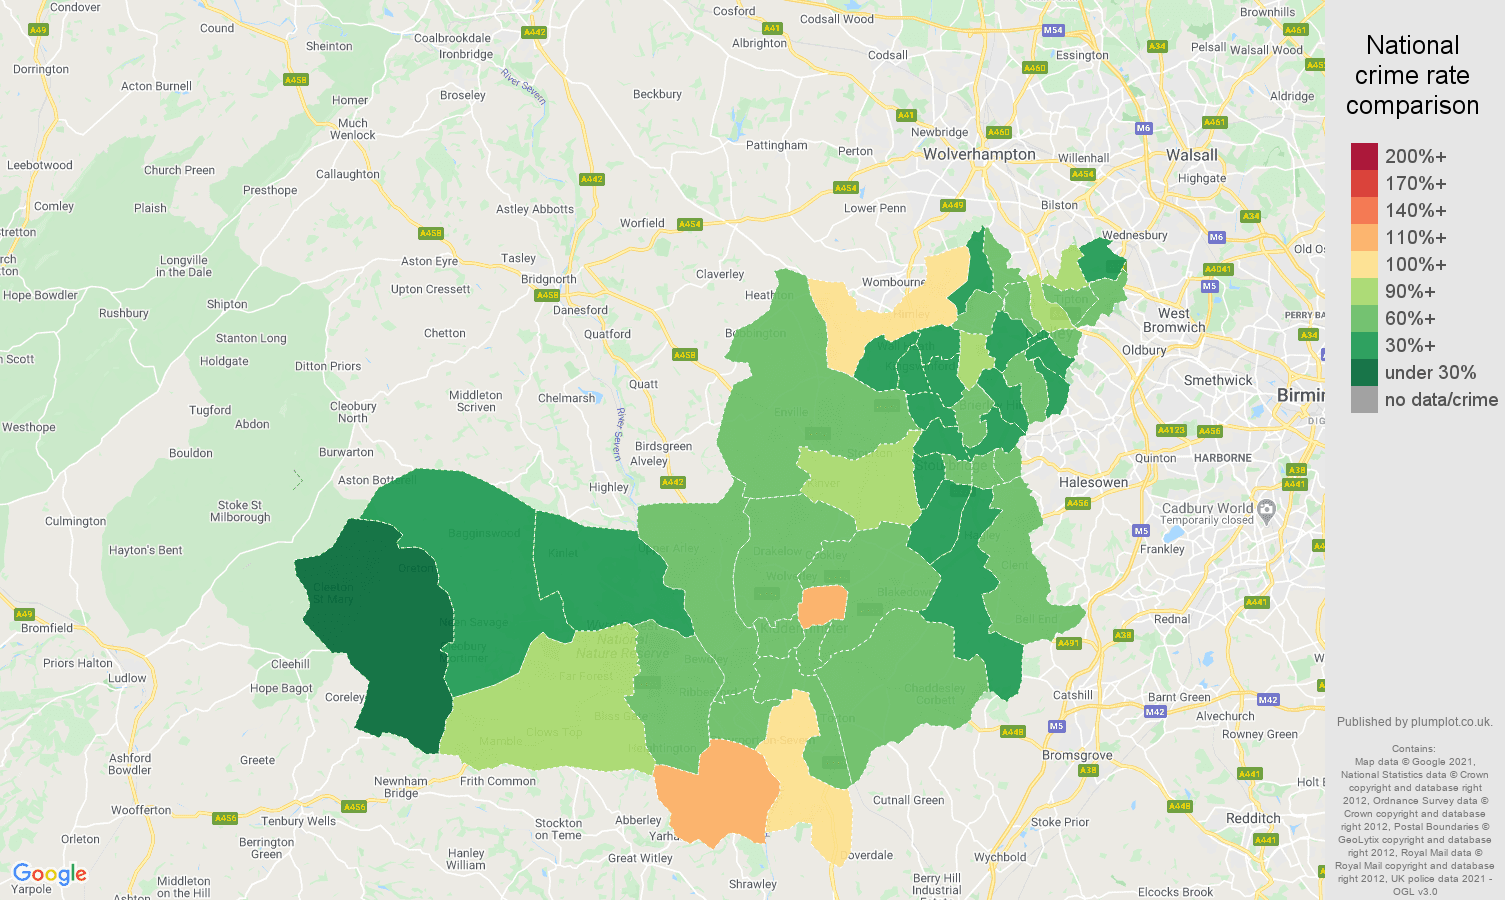 Dudley antisocial behaviour crime rate comparison map